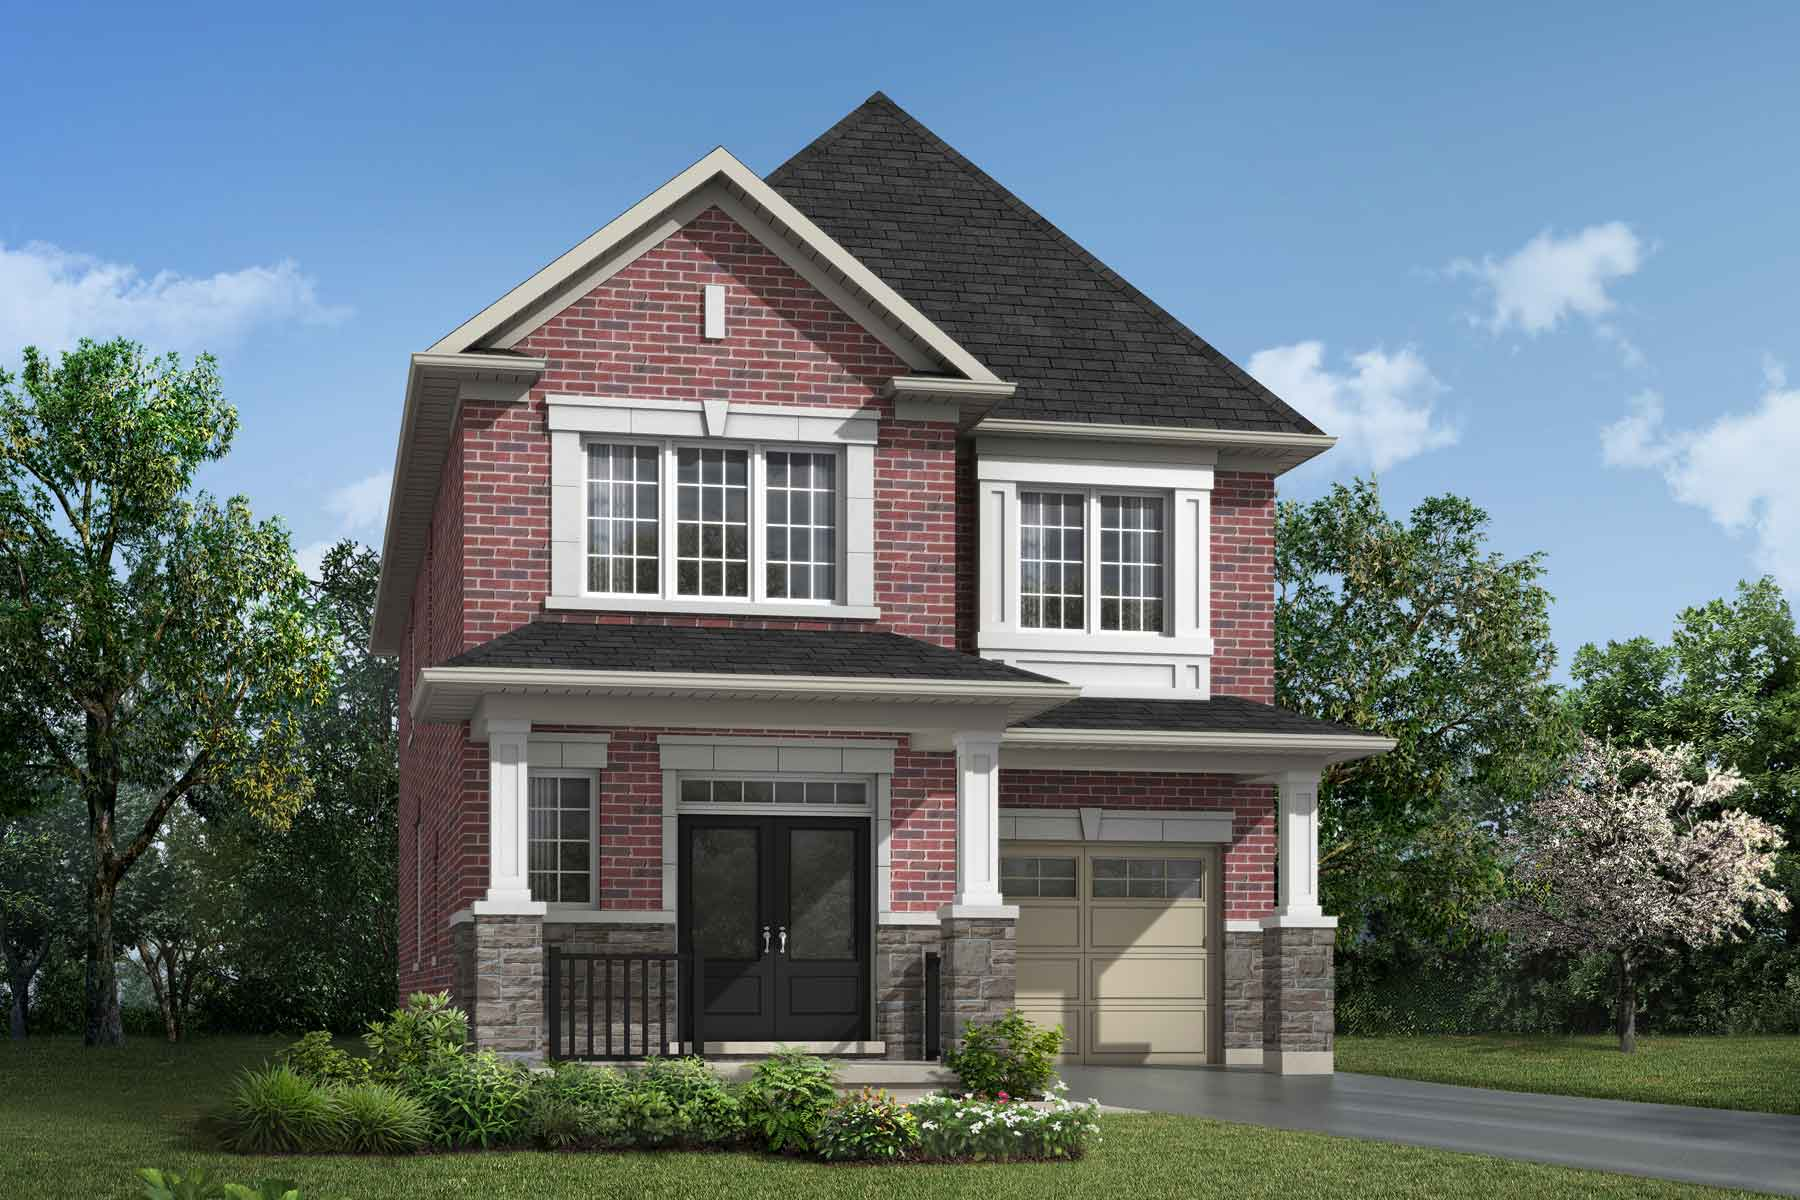 The Millbank End Plan traditional_southestates_oxford_main at Wildflower Crossing in Kitchener Ontario by Mattamy Homes